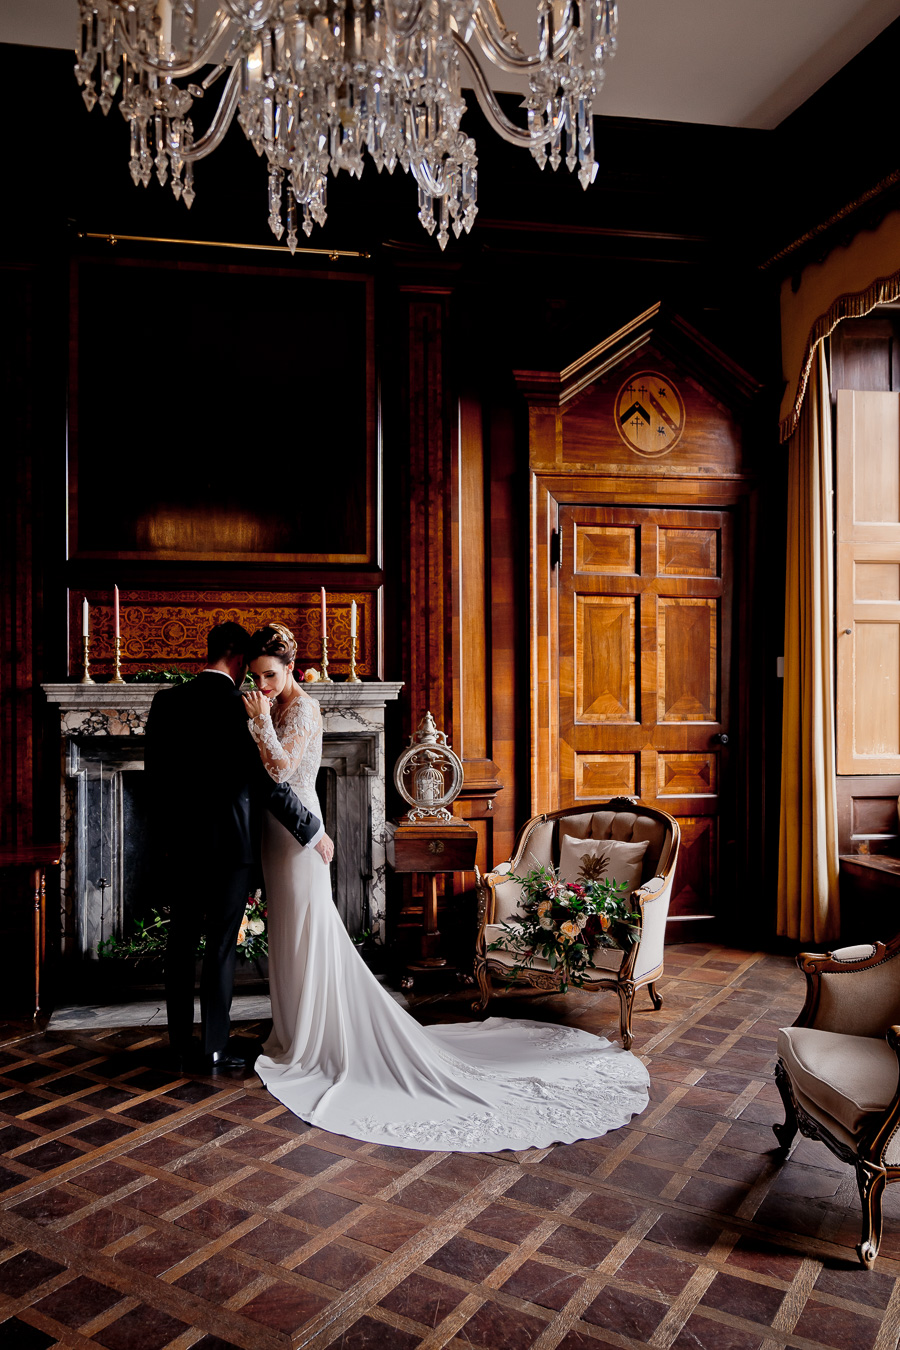 Elegance and glamour, Vanity Fair style. A styled wedding photoshoot from Davenport House. Image Laura May Photography (22)